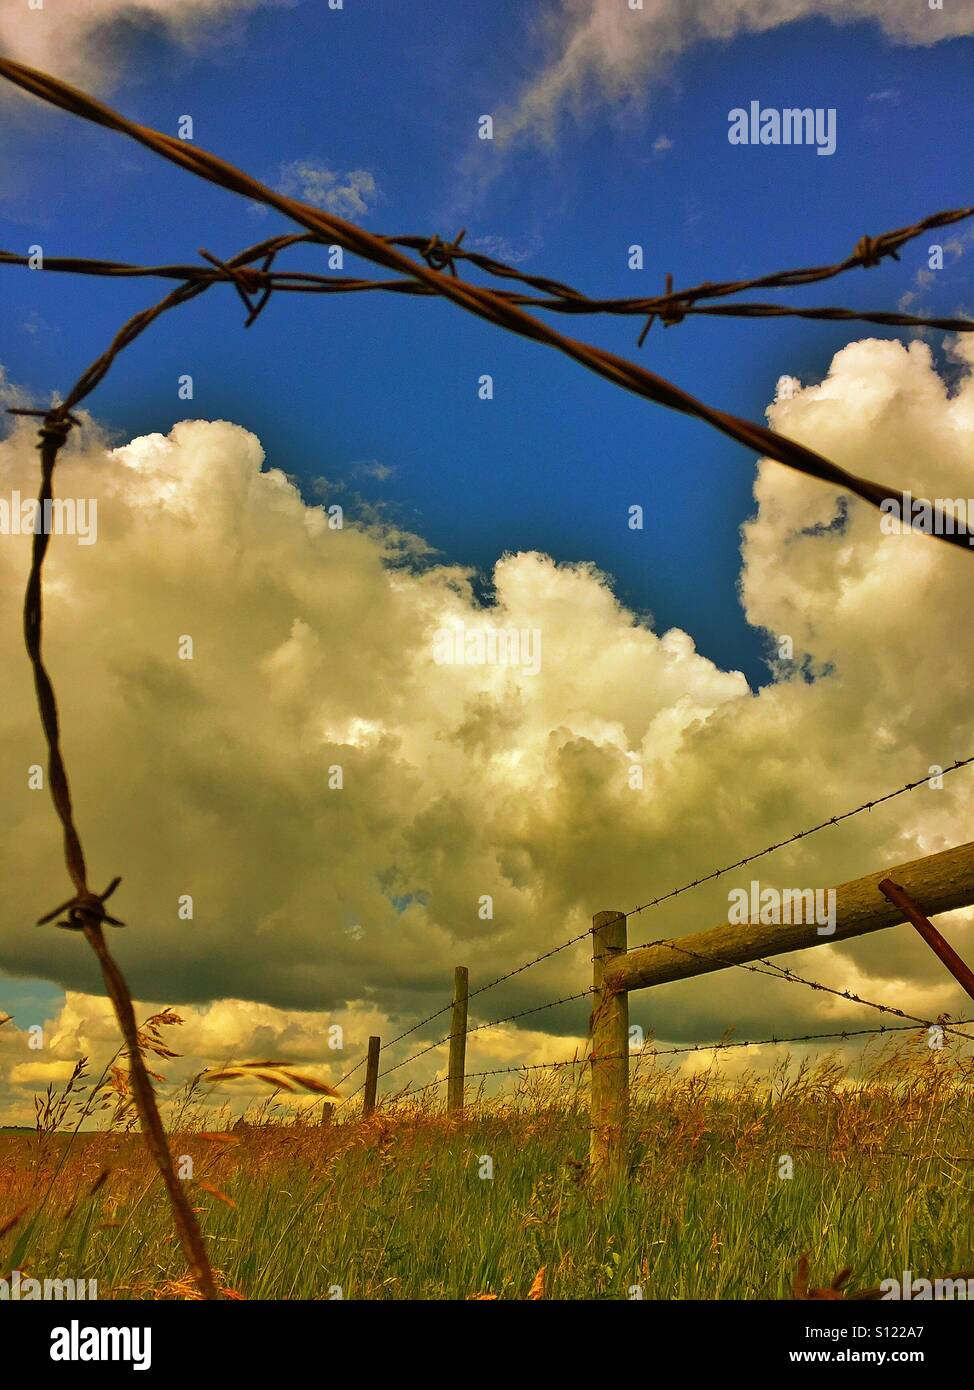 Strands of barbed wire, darned wire fence, brome grass with dramatic sky - Stock Image